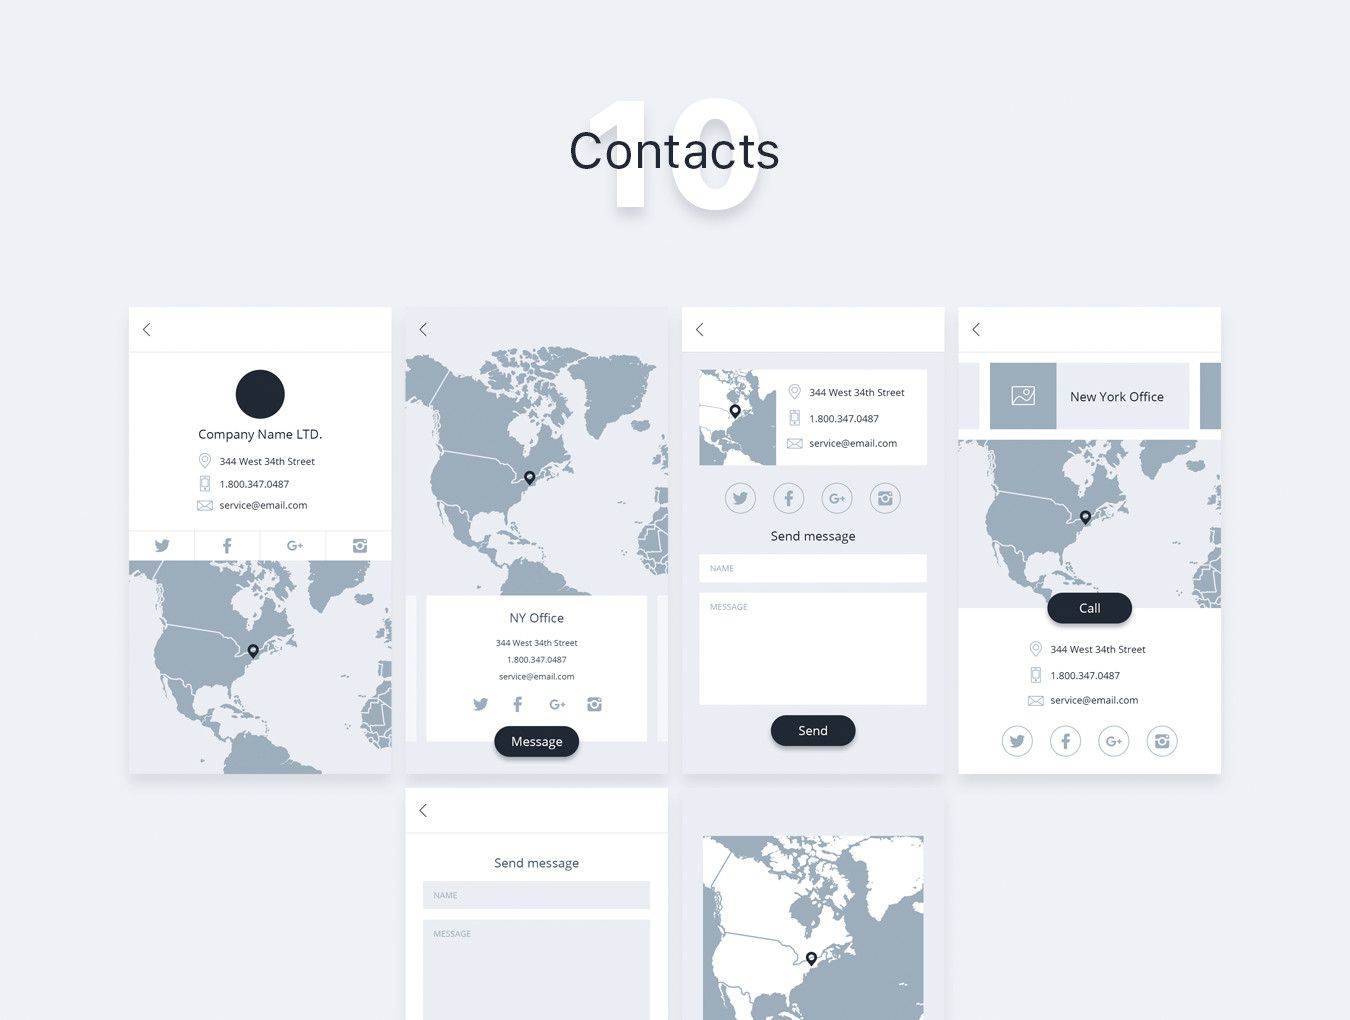 Liner Wireframe Kit Design Freebies On Ui8 In 2020 Design Freebie Wireframe Kit Wireframe